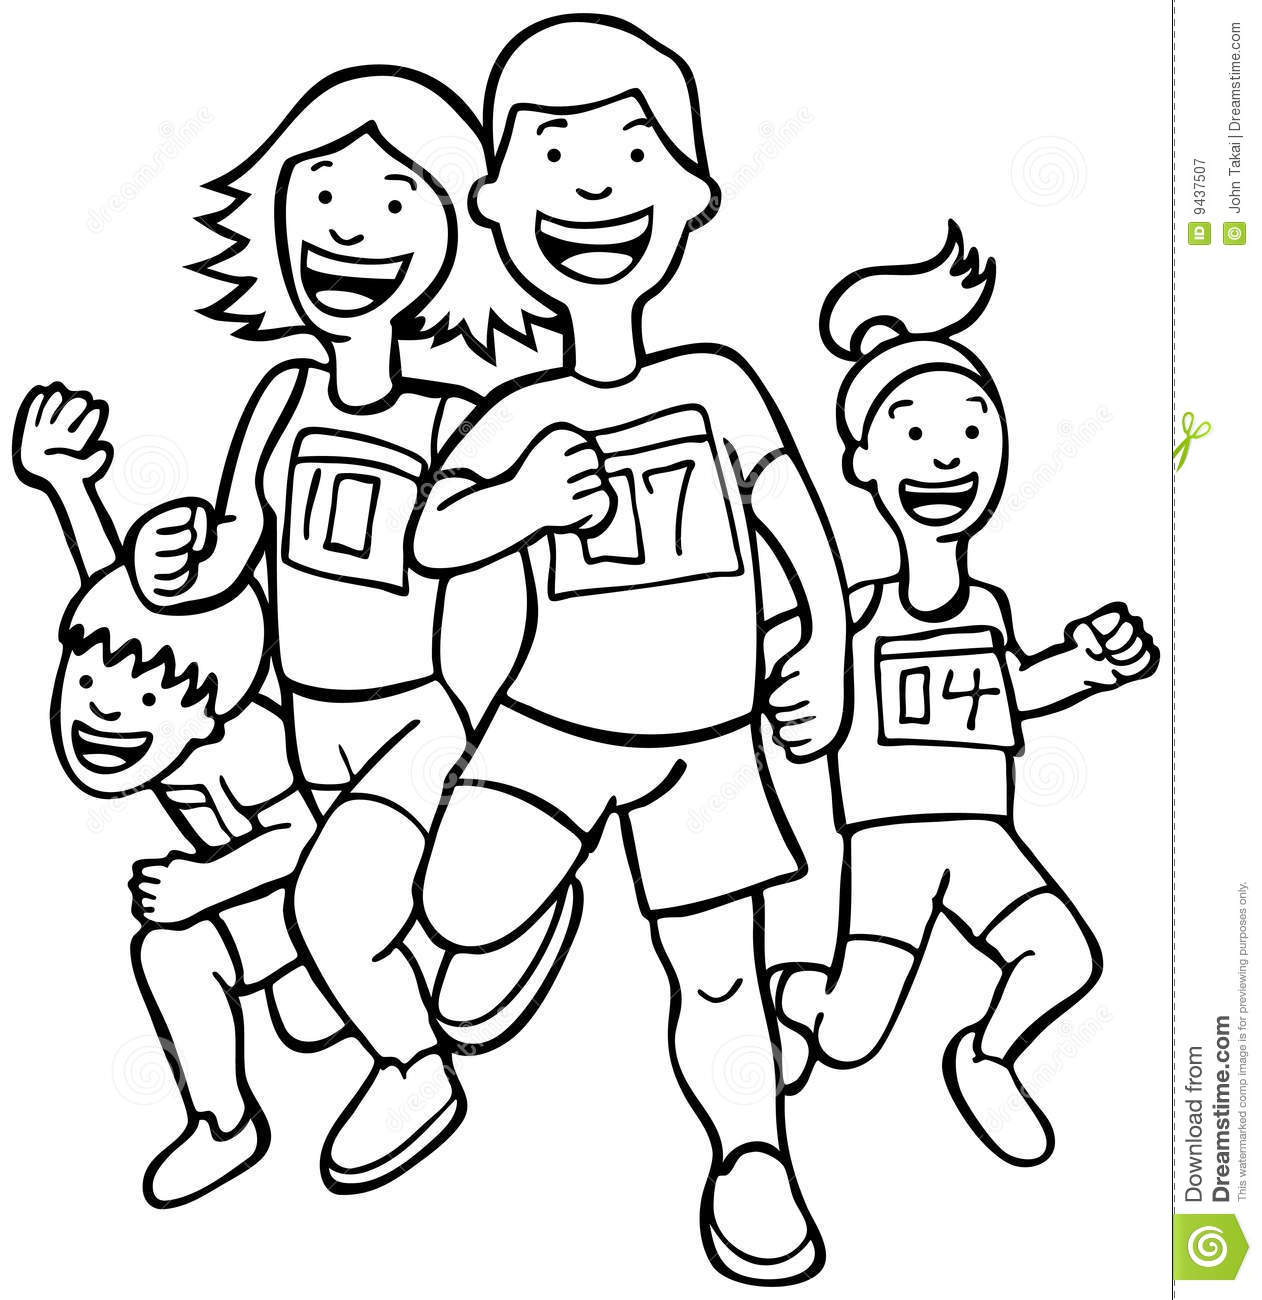 Black and white clipart child running outside clipart freeuse stock Black And White Pictures Of Children | Free download best Black And ... clipart freeuse stock